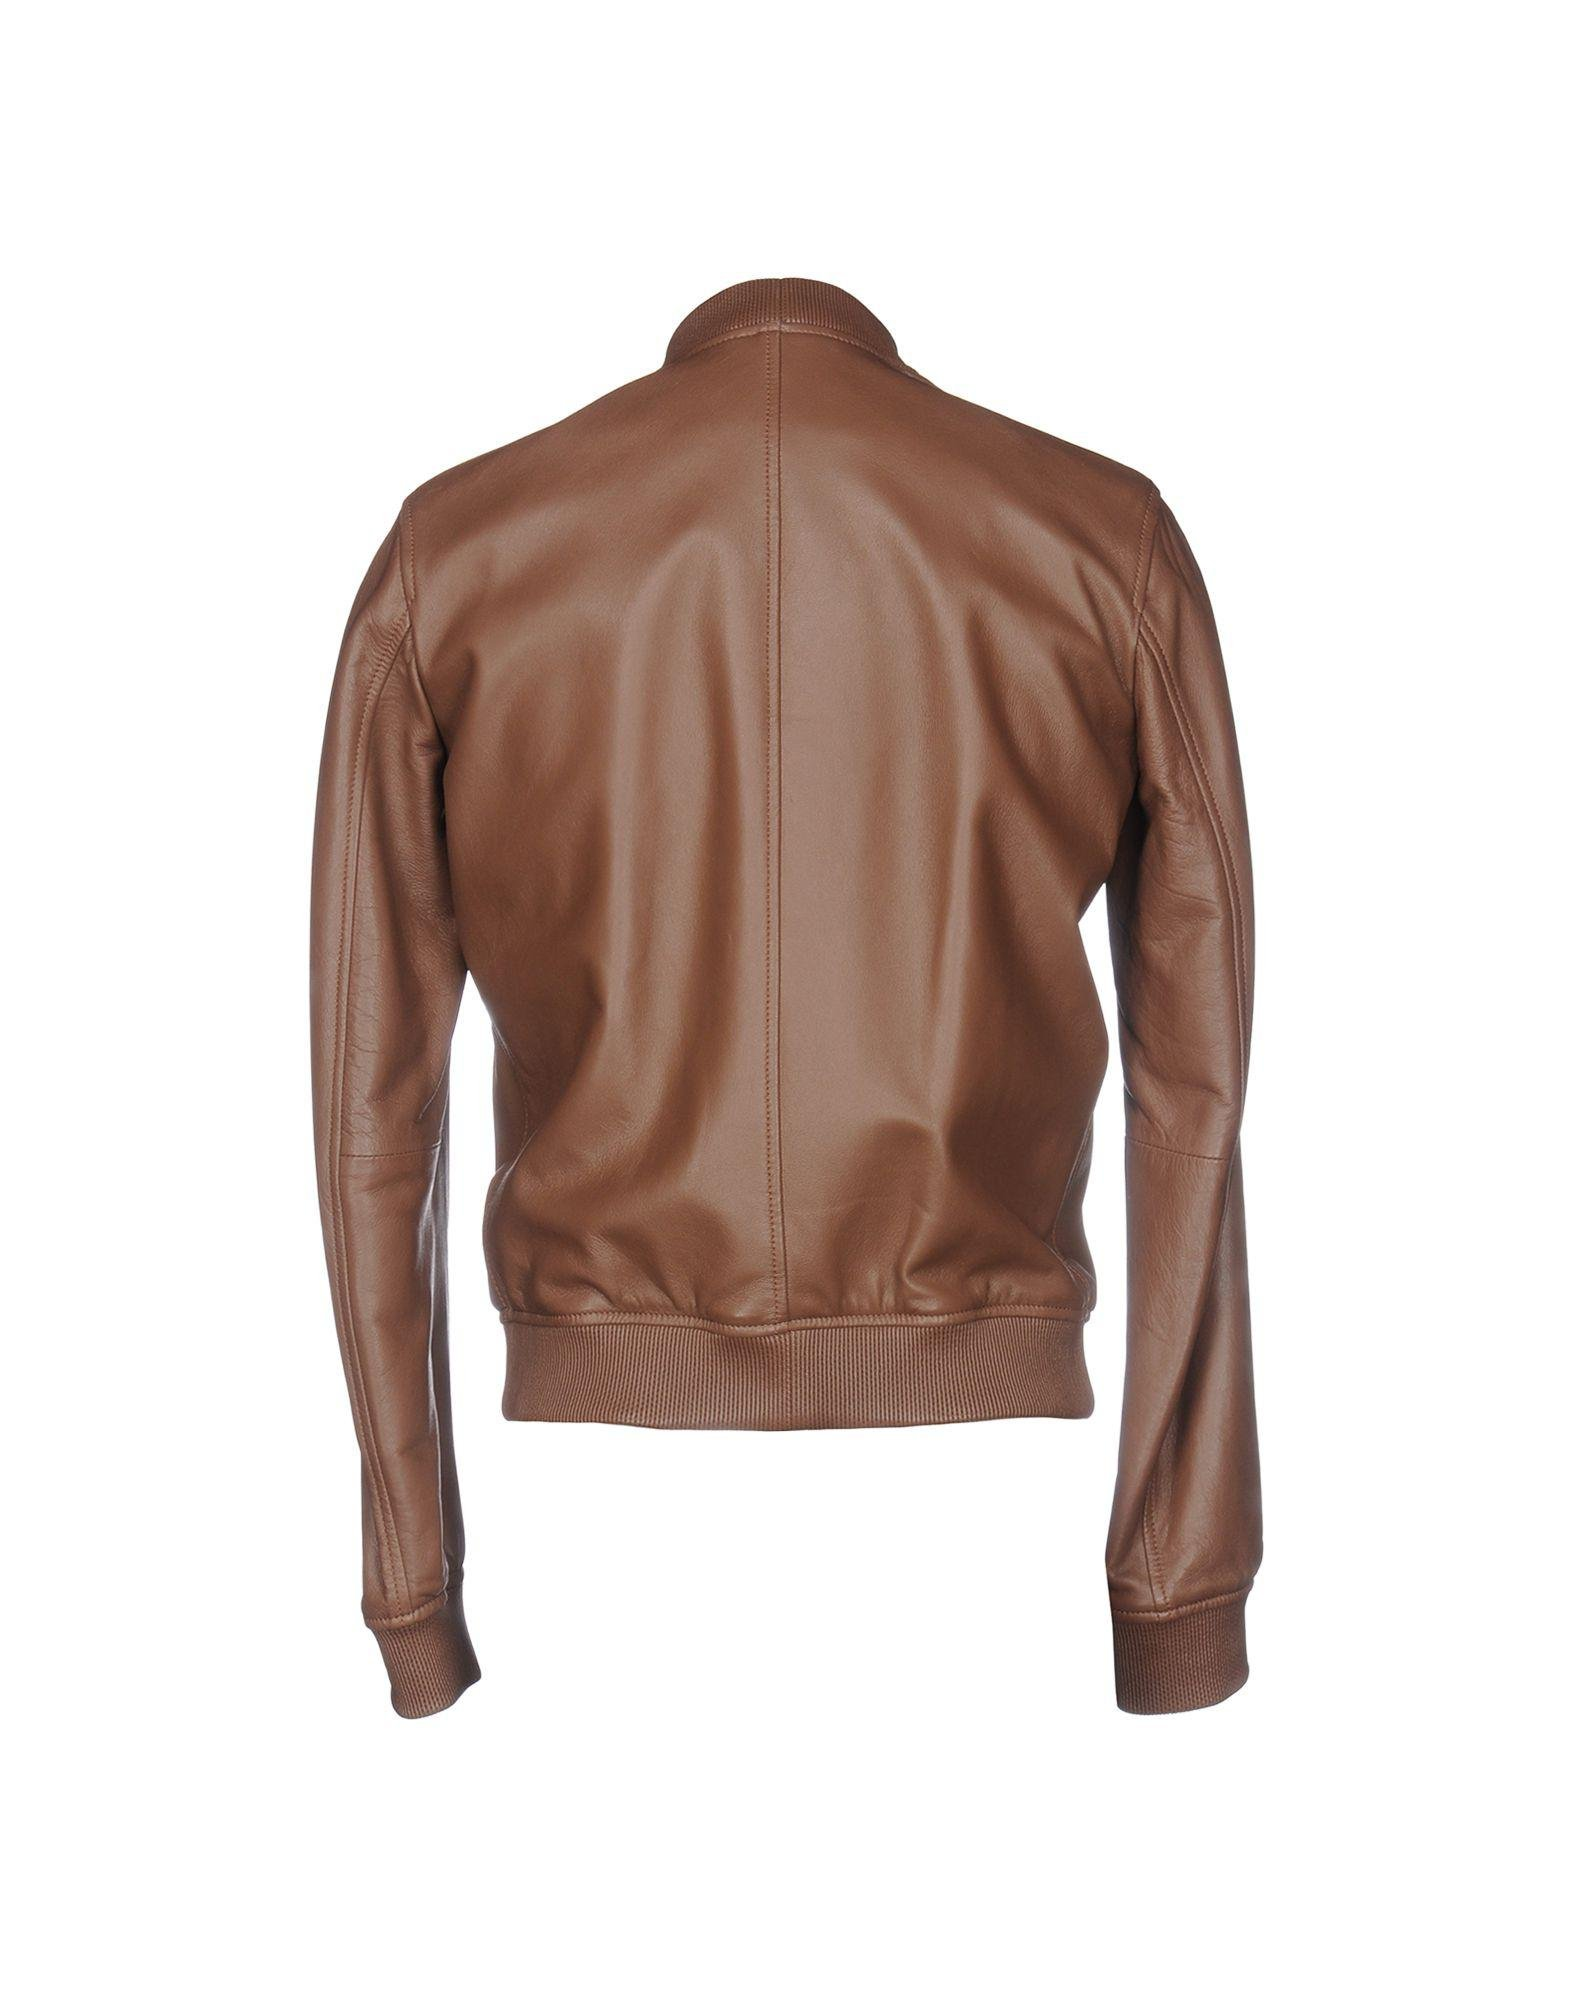 DSquared² Leather Jacket in Brown for Men